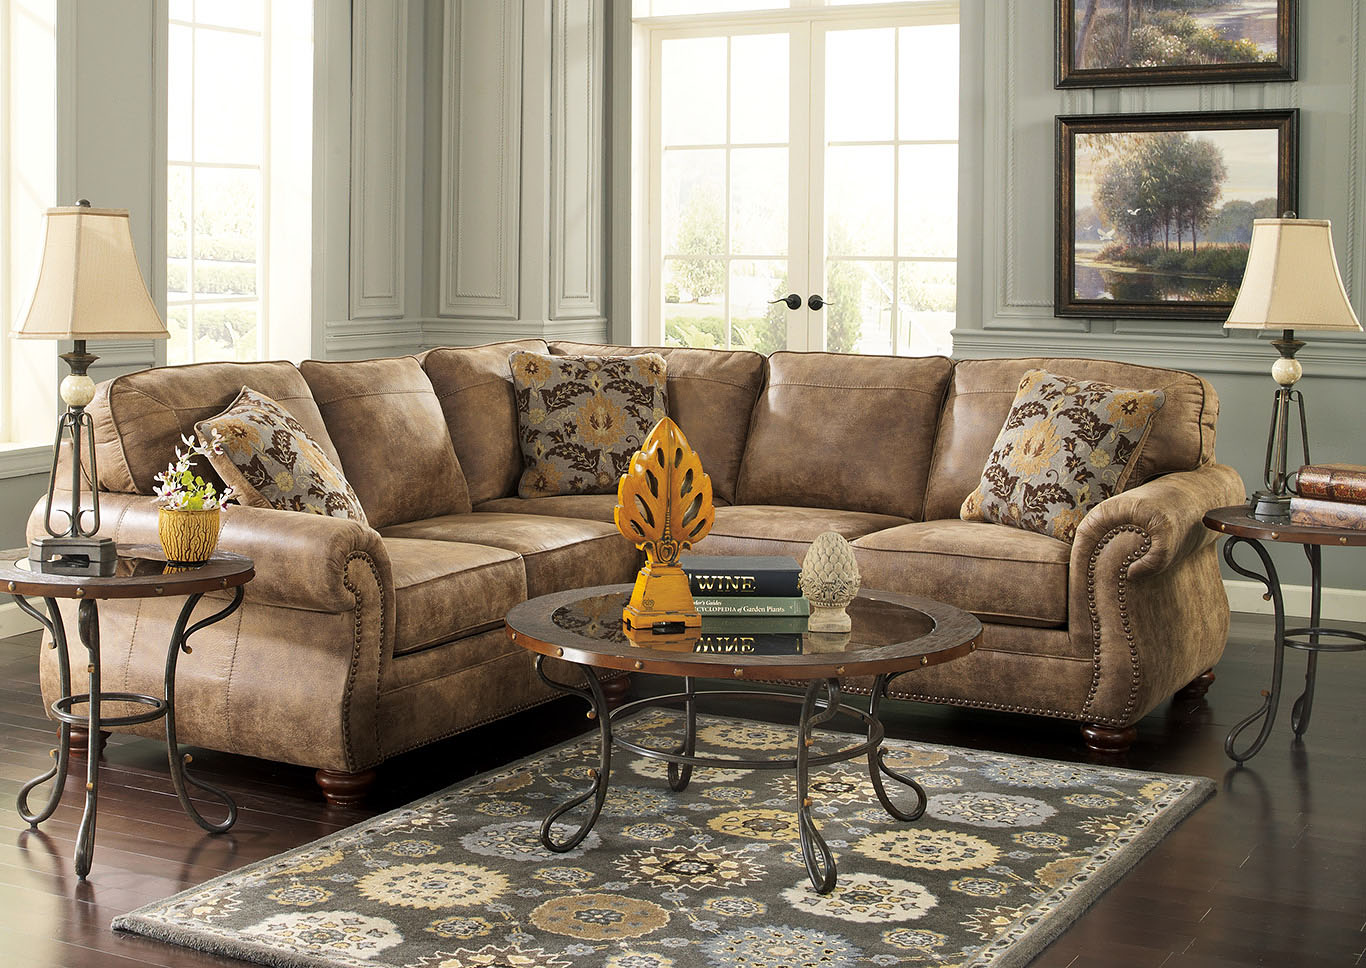 Gibson Furniture Gallatin Hendersonville Nashville Tn Larkinhurst Earth Sectional